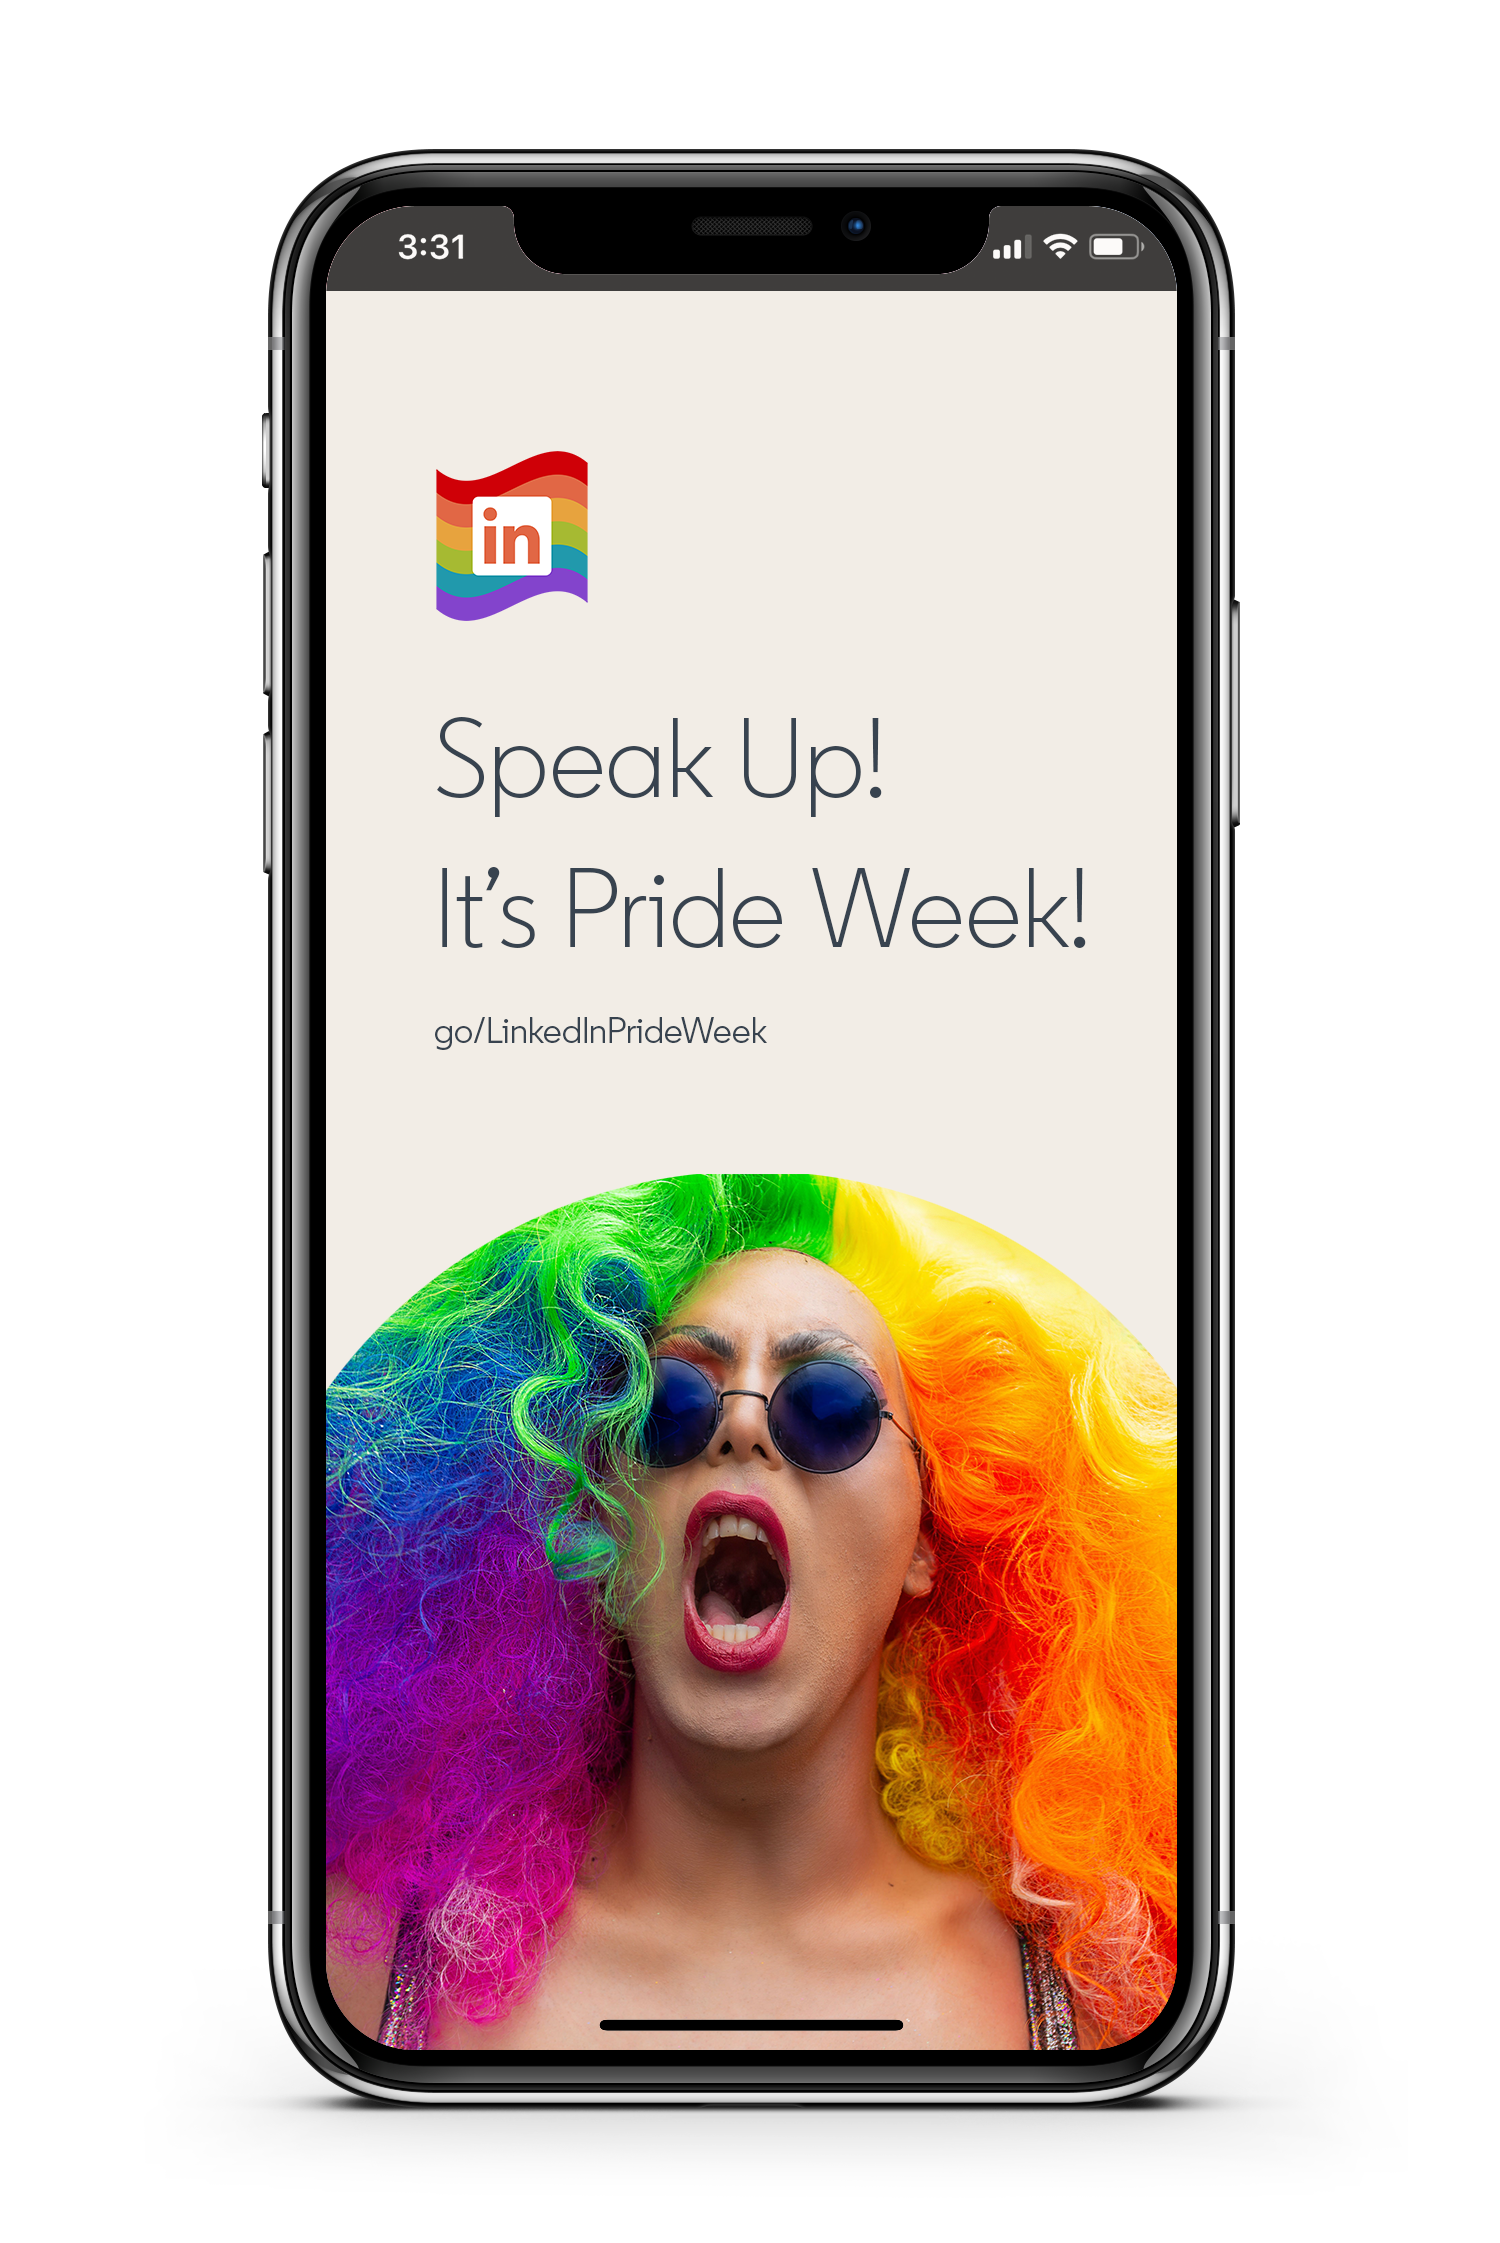 LinkedIn Employee Resource Group In@Out webpage with woman with rainbow hair on iPhone